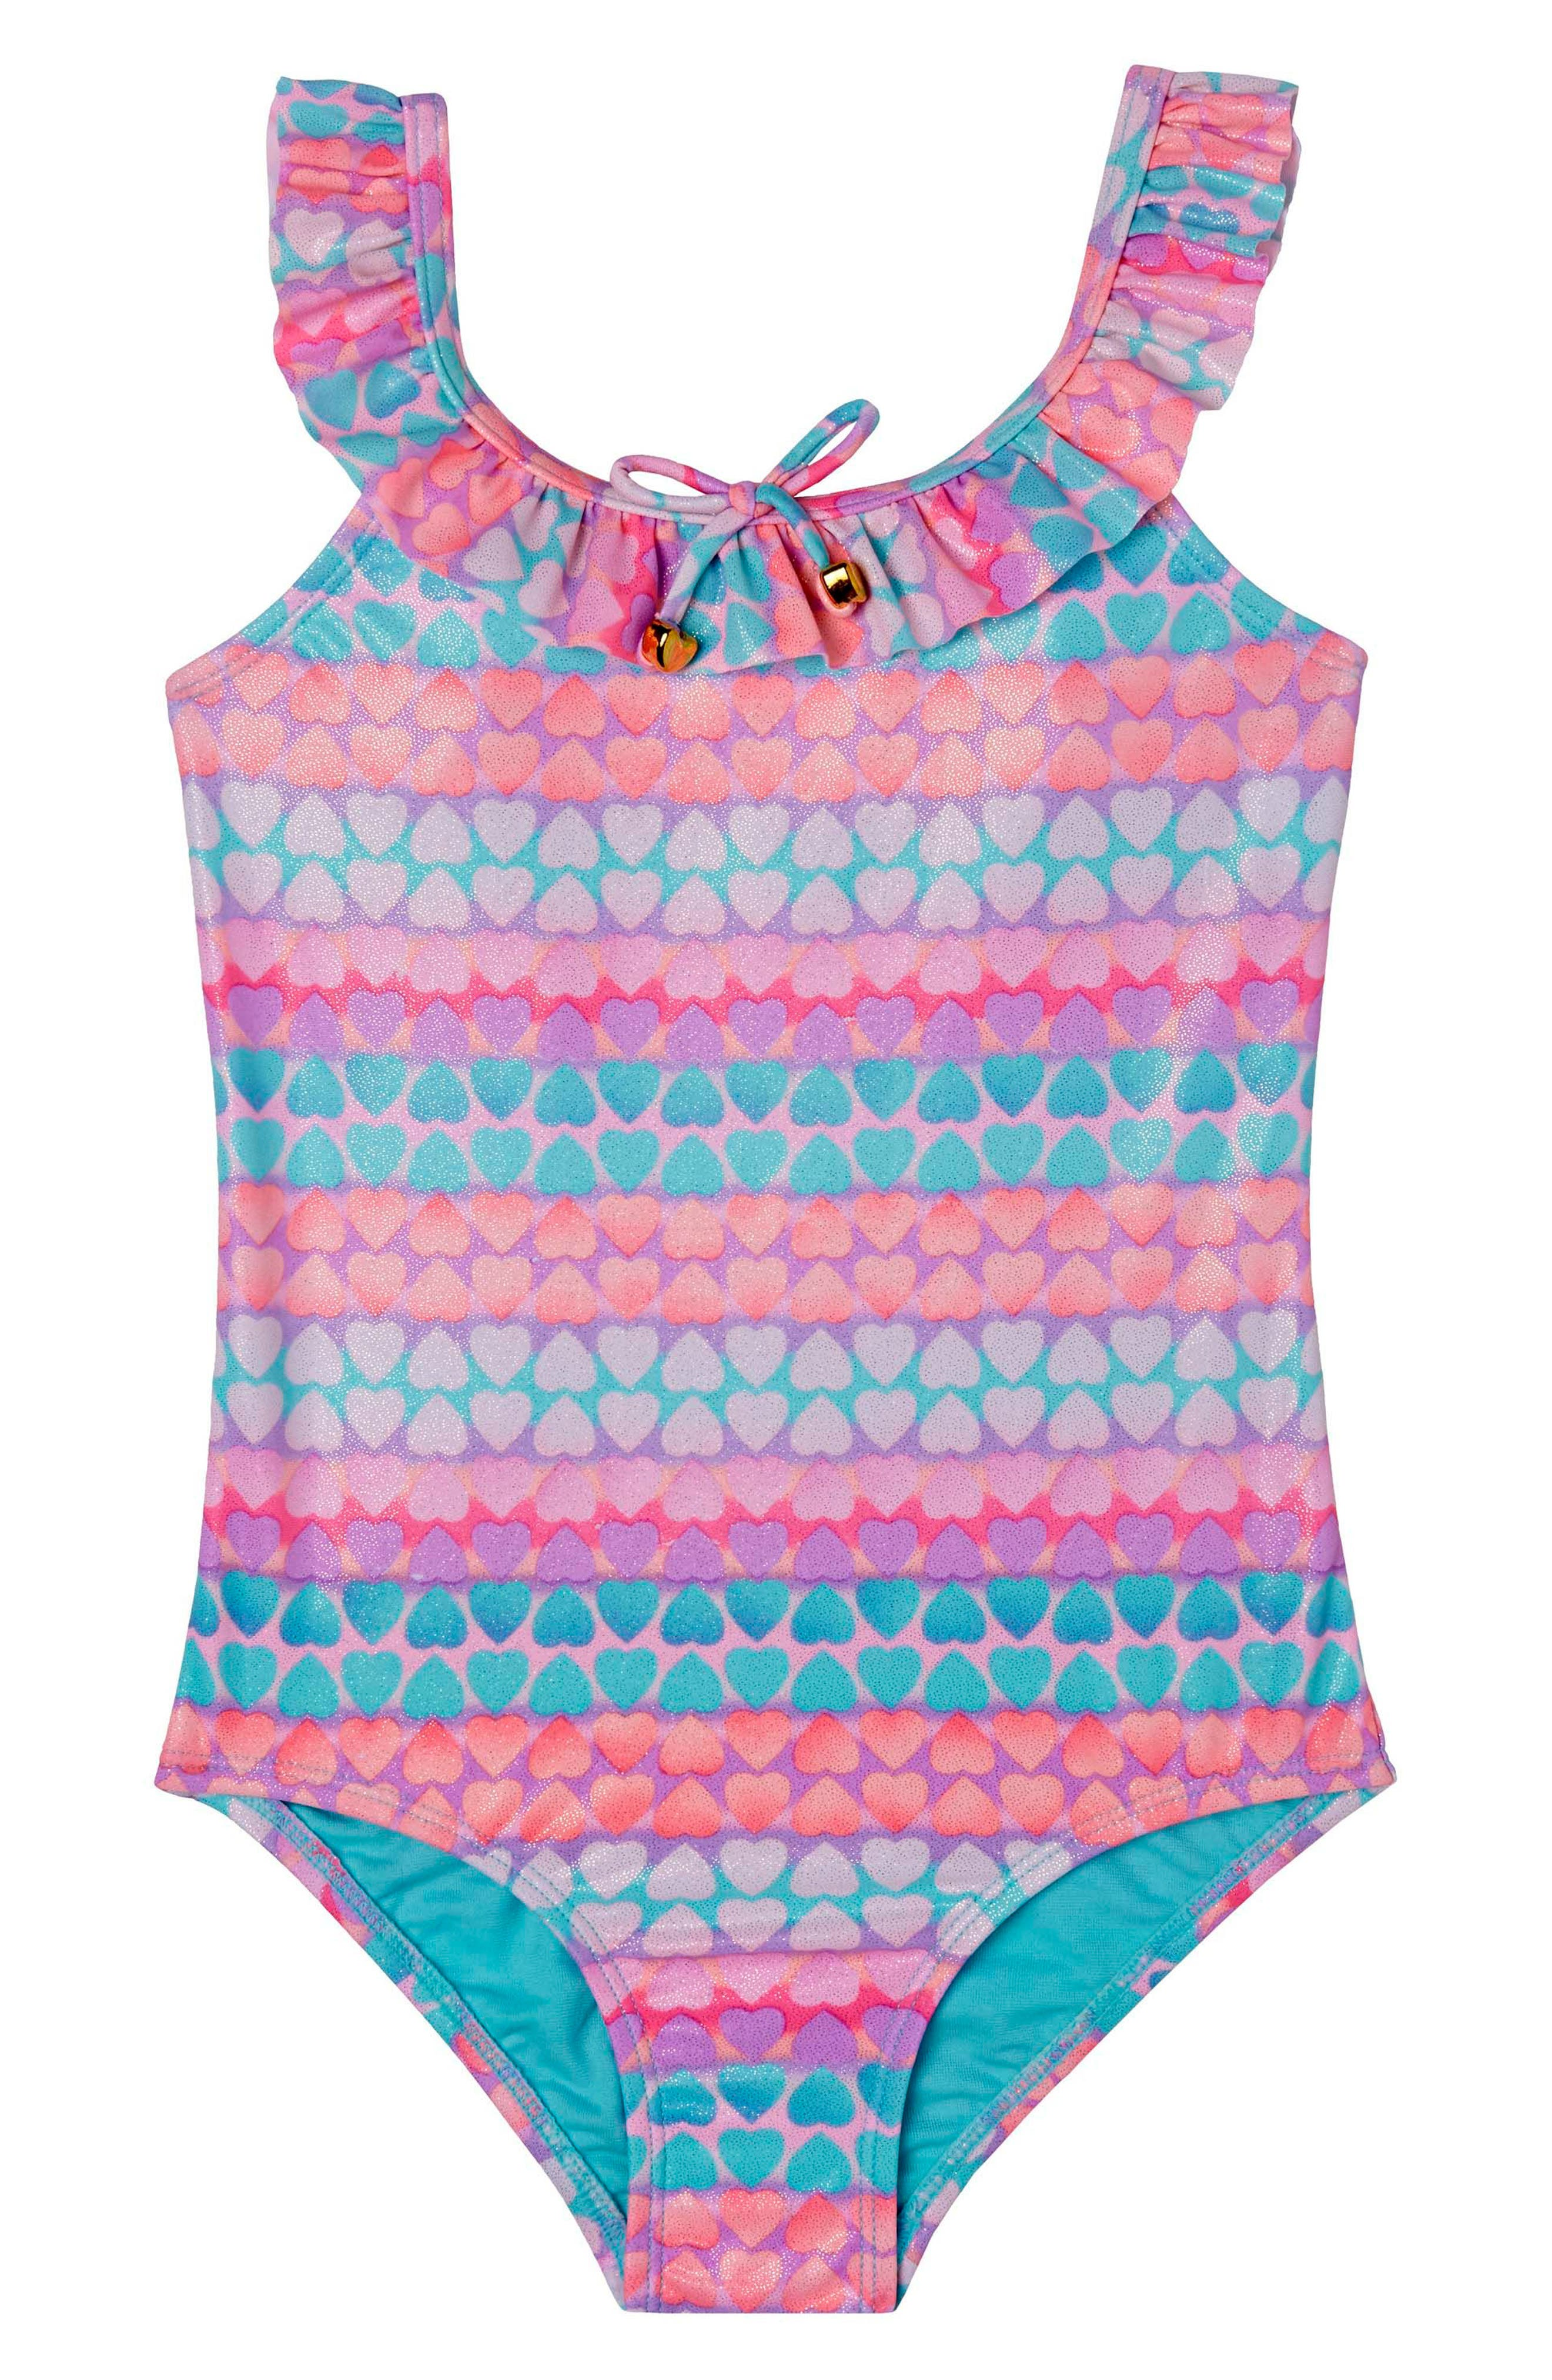 Hula Star Hearts Galore One-Piece Swimsuit (Toddler Girls & Little Girls)